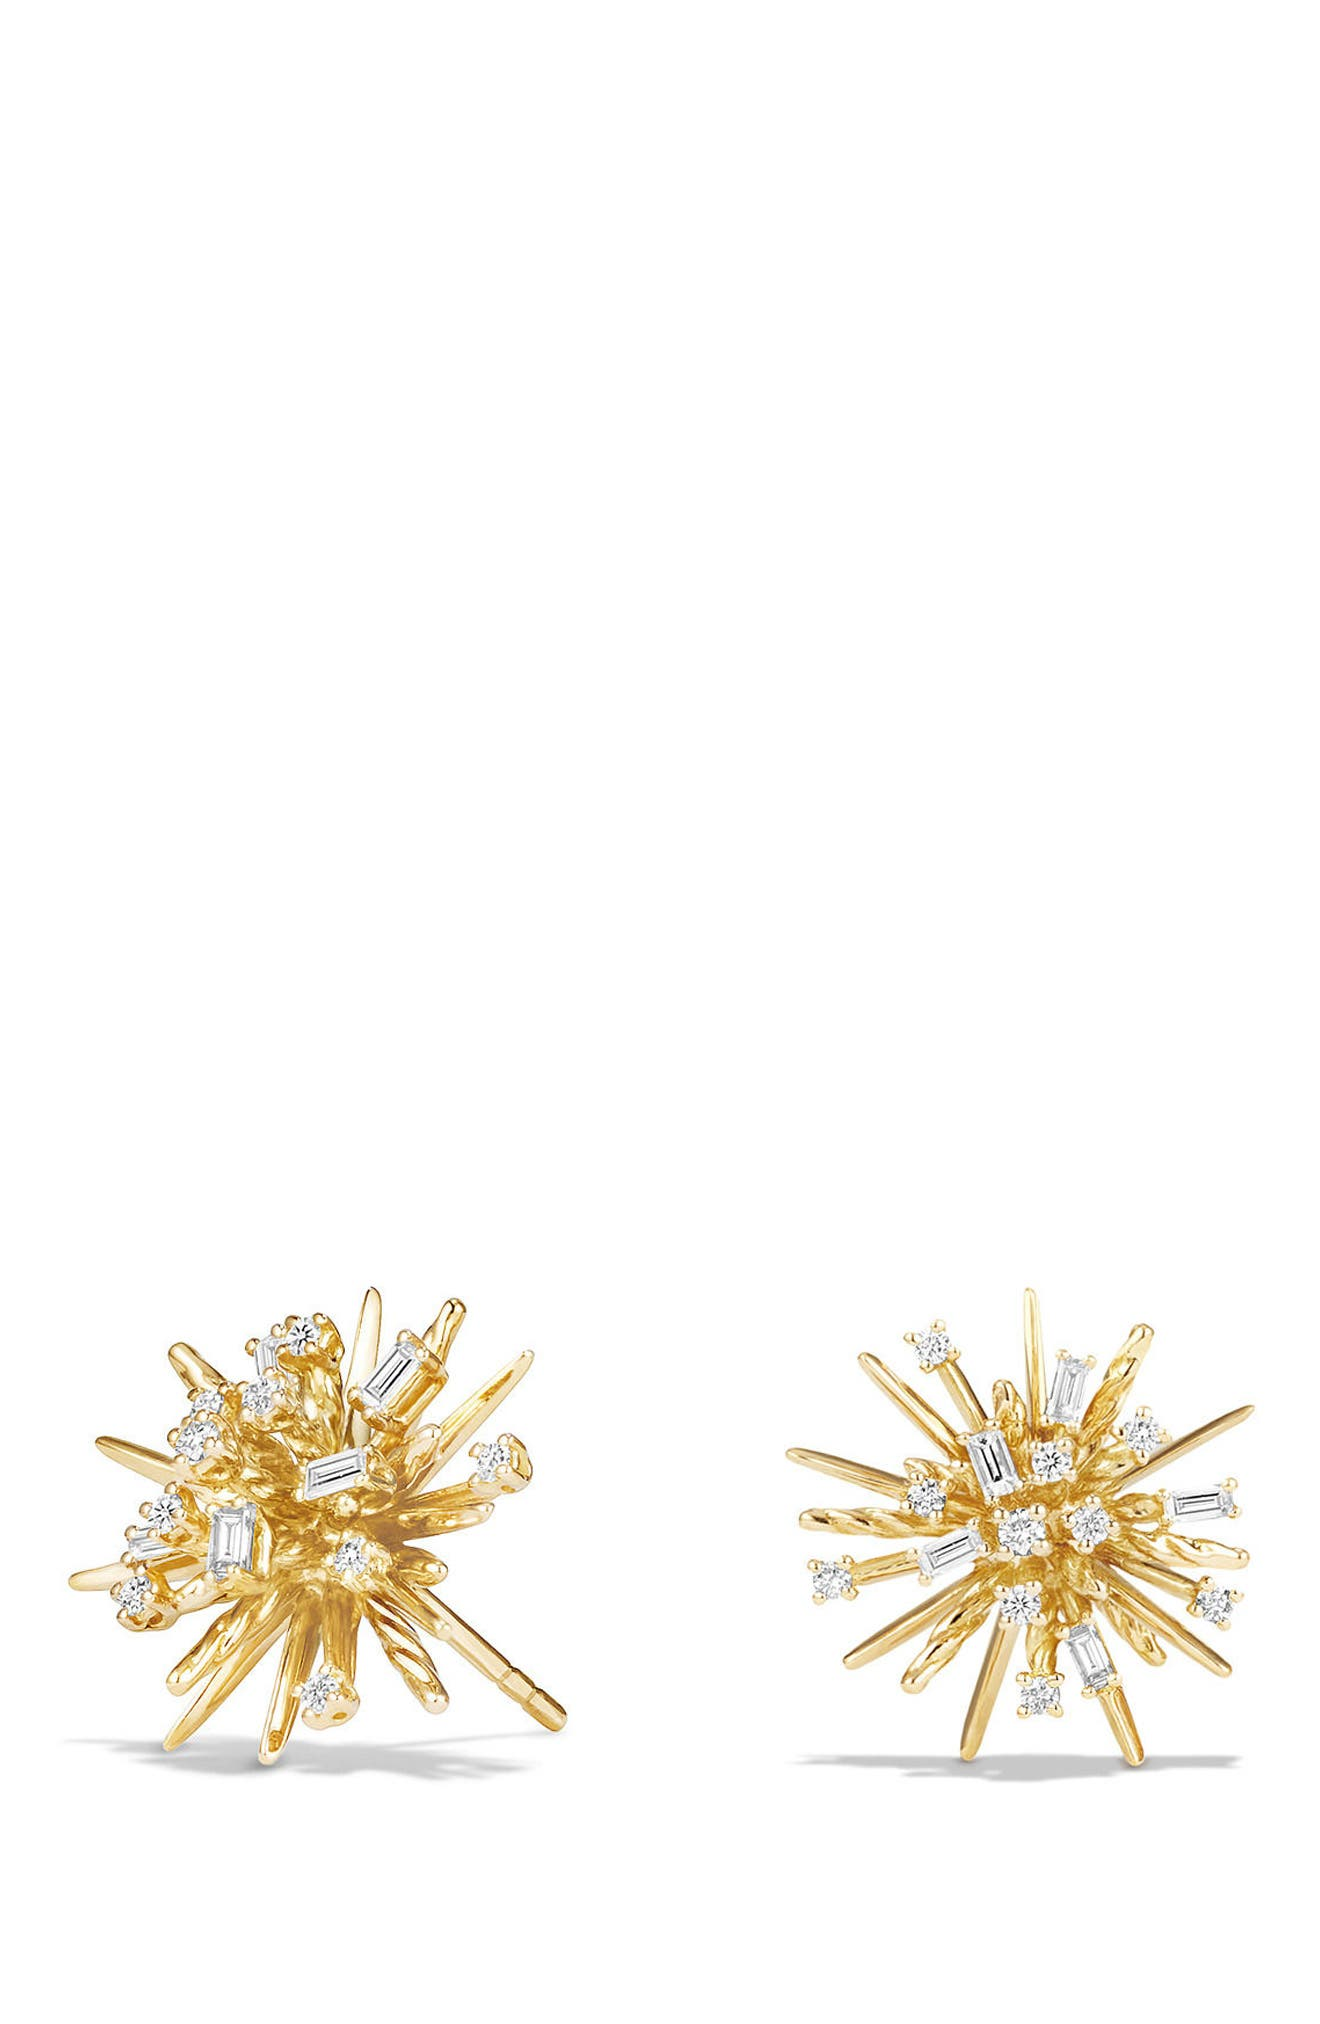 Supernova Stud Earrings with Diamonds in 18K Gold,                         Main,                         color, YELLOW GOLD